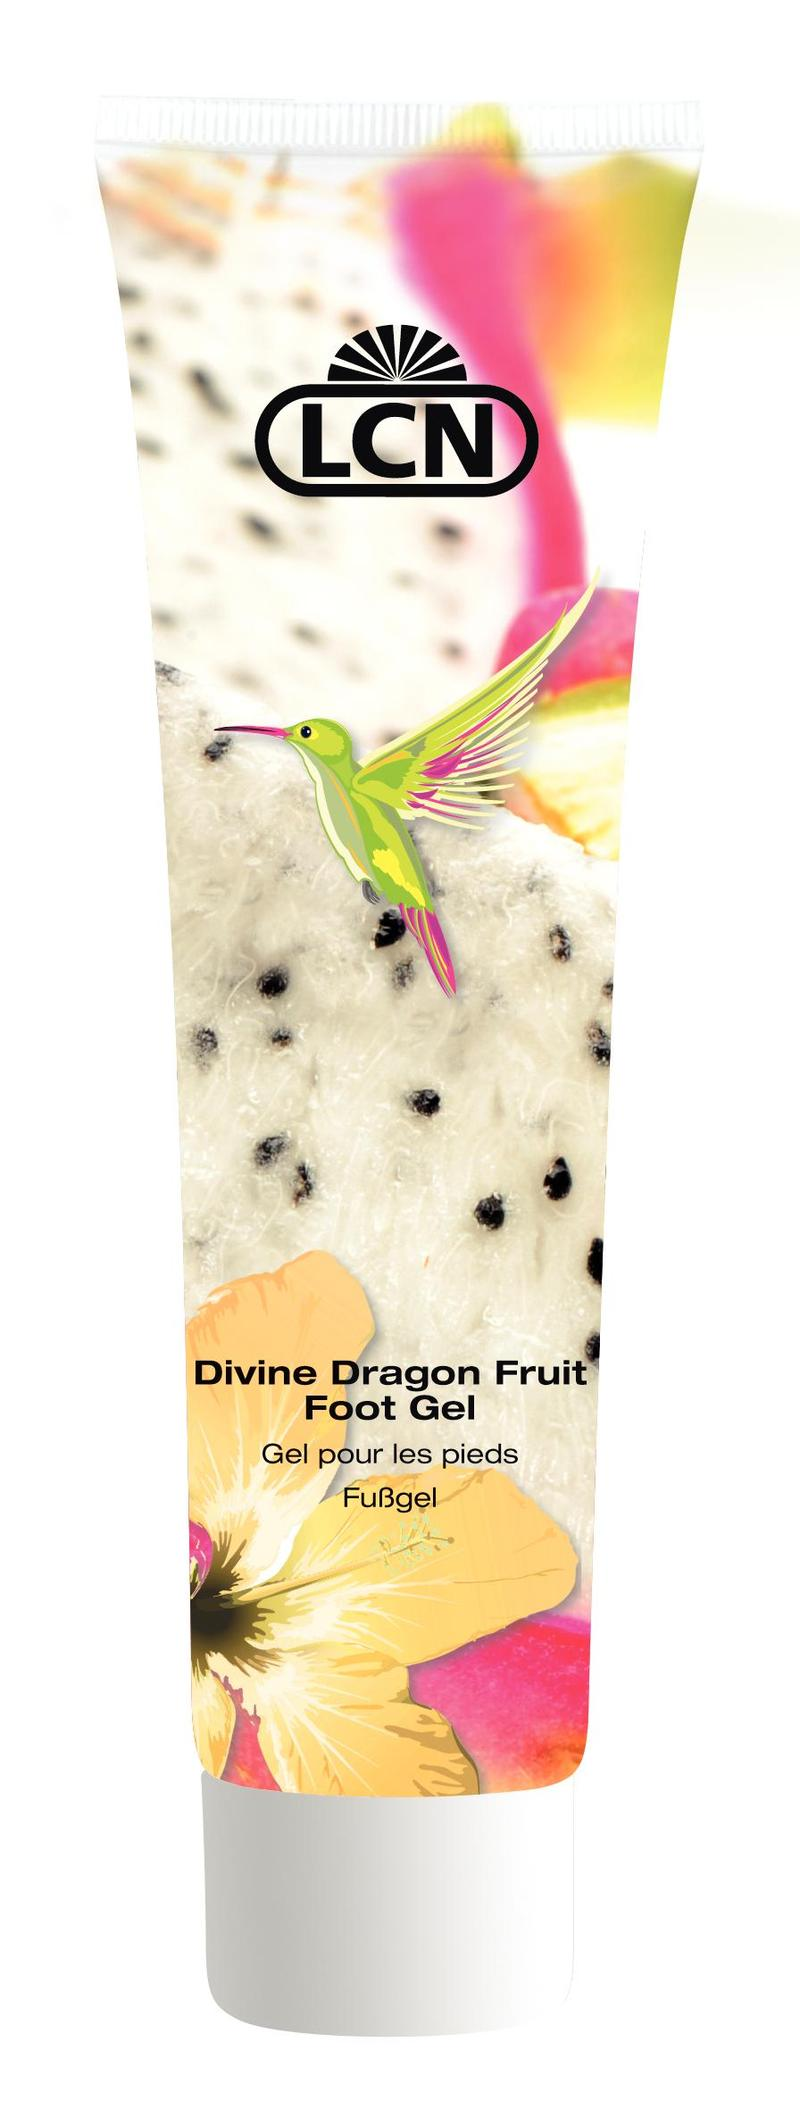 Foot Gel-Divine Dragon Fruit, 100ml